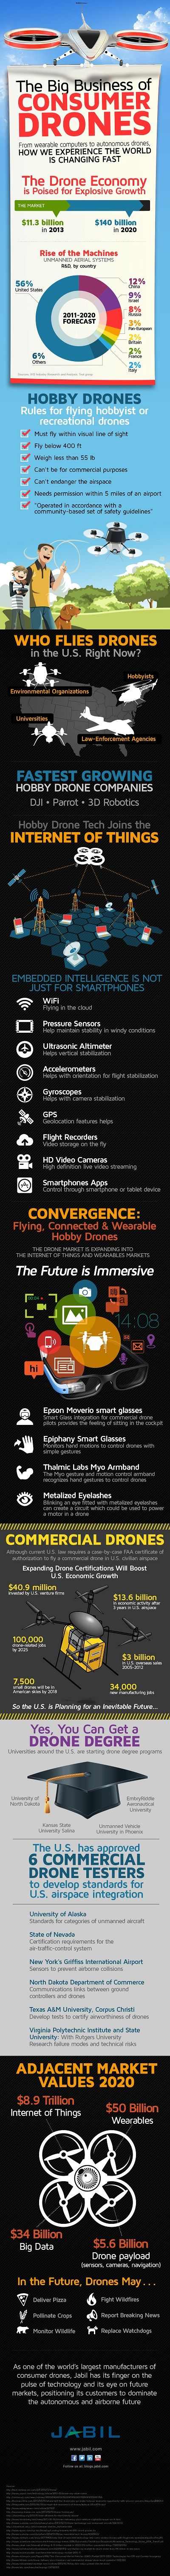 The Big Business of Consumer Drones